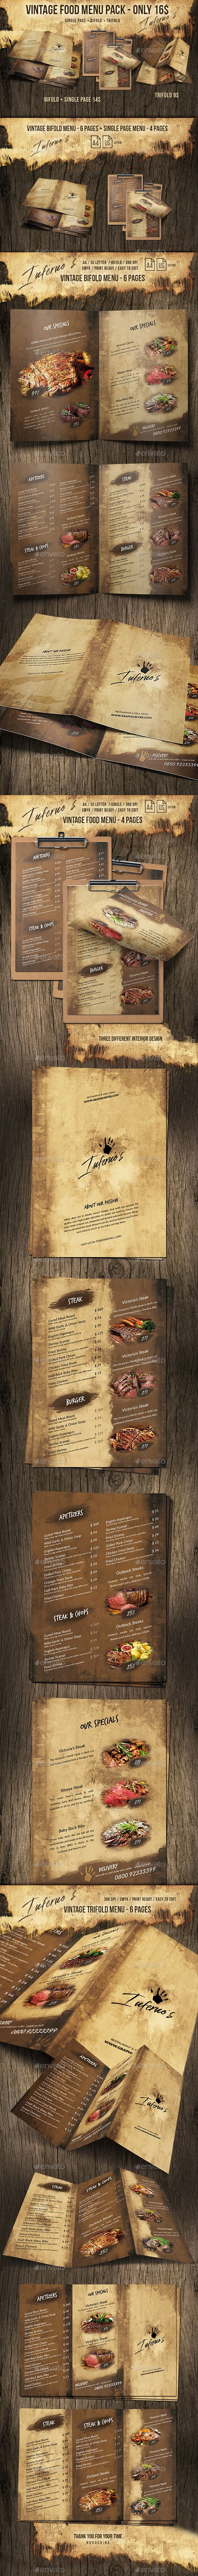 Infernos Vintage Menu Bundle | Identidad corporativa